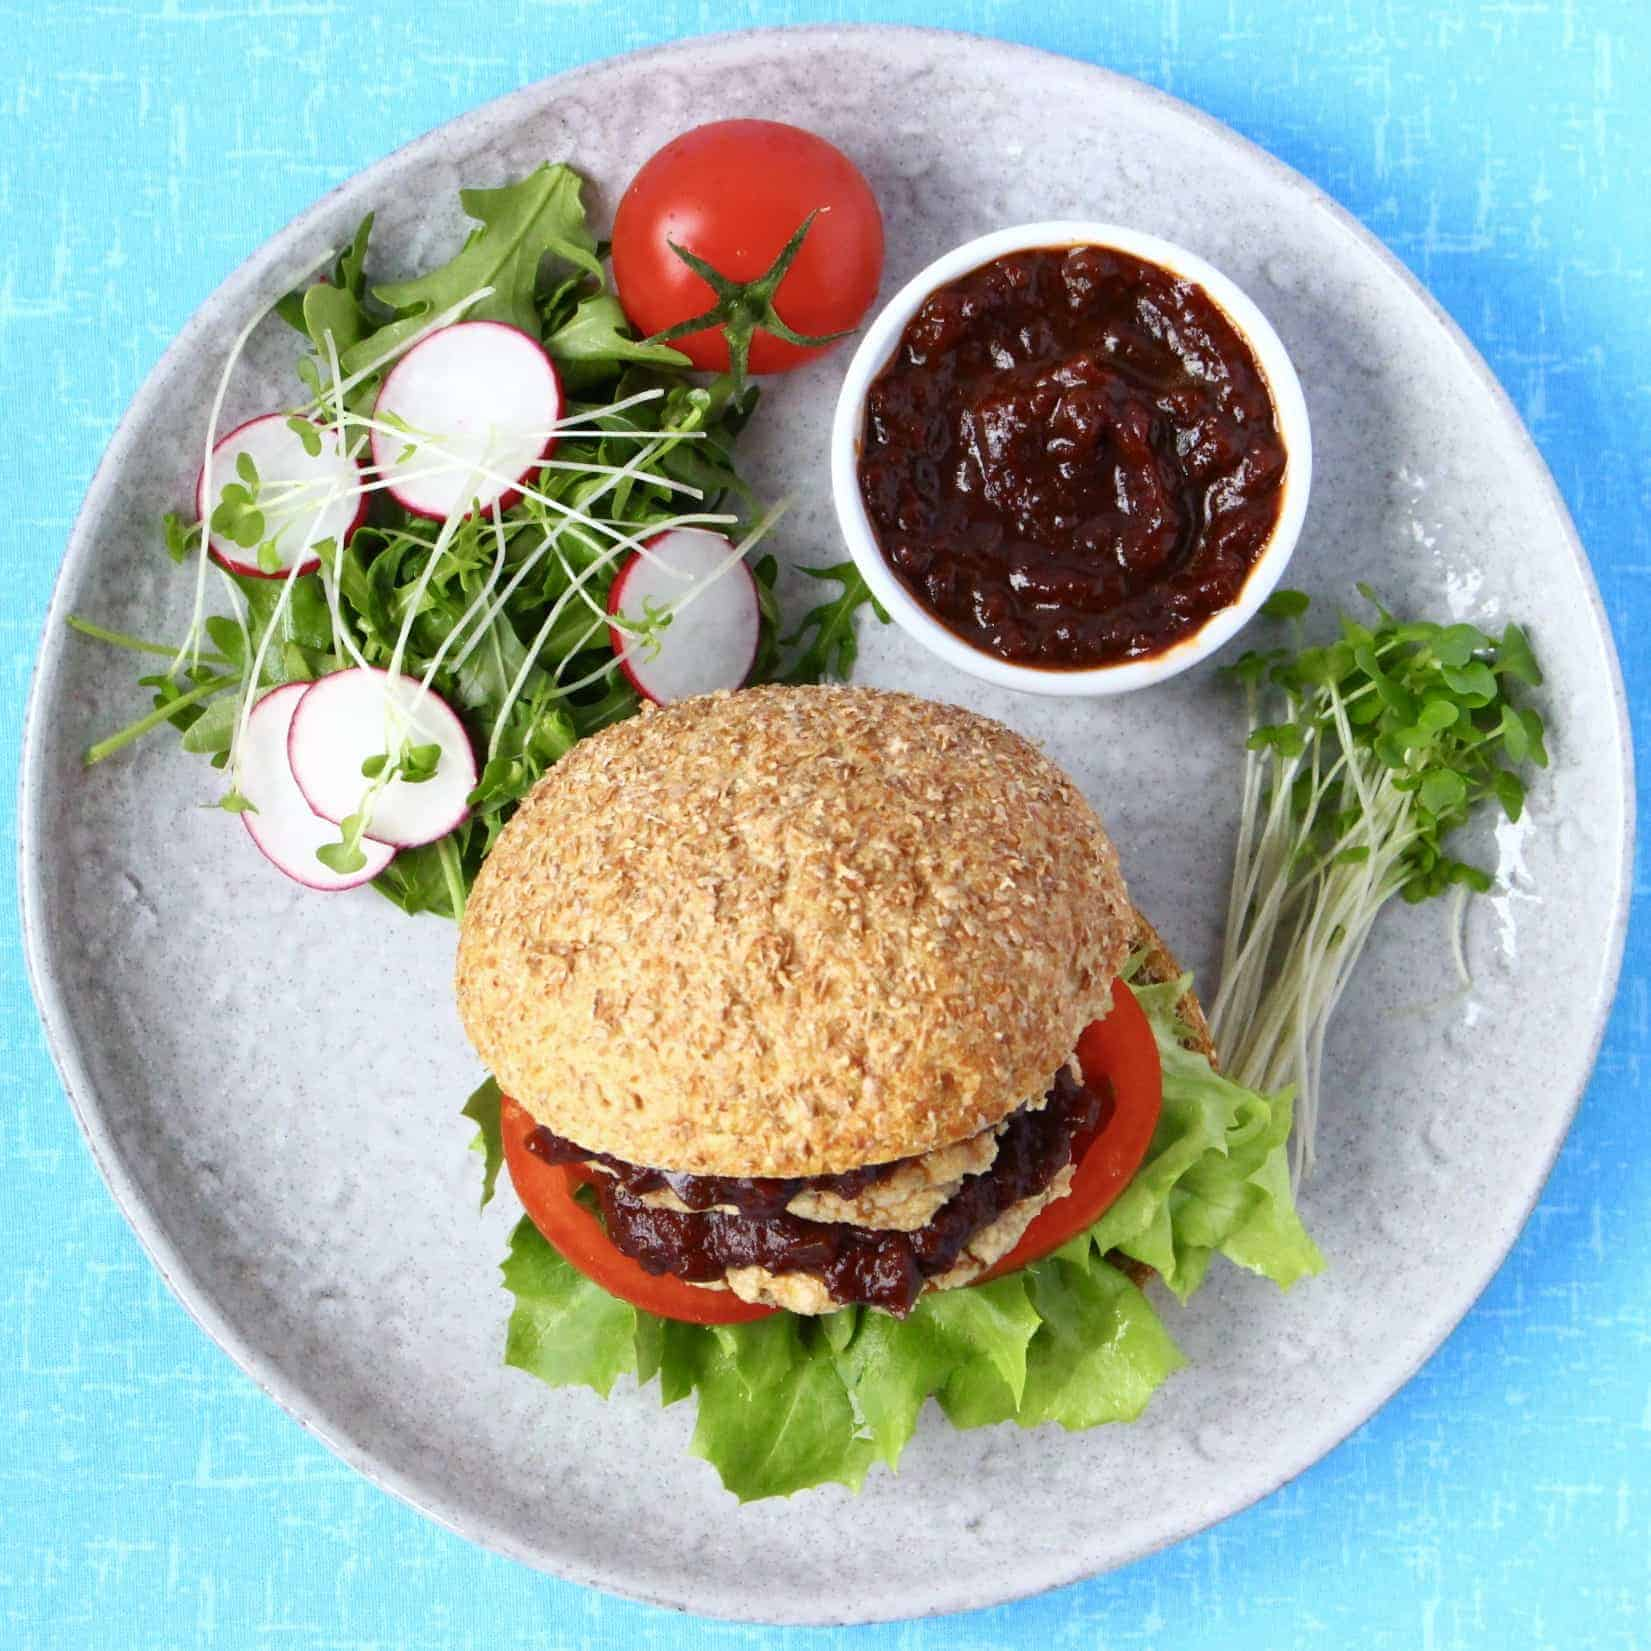 A tofu burger in a bun with brown sauce and salad on a plate